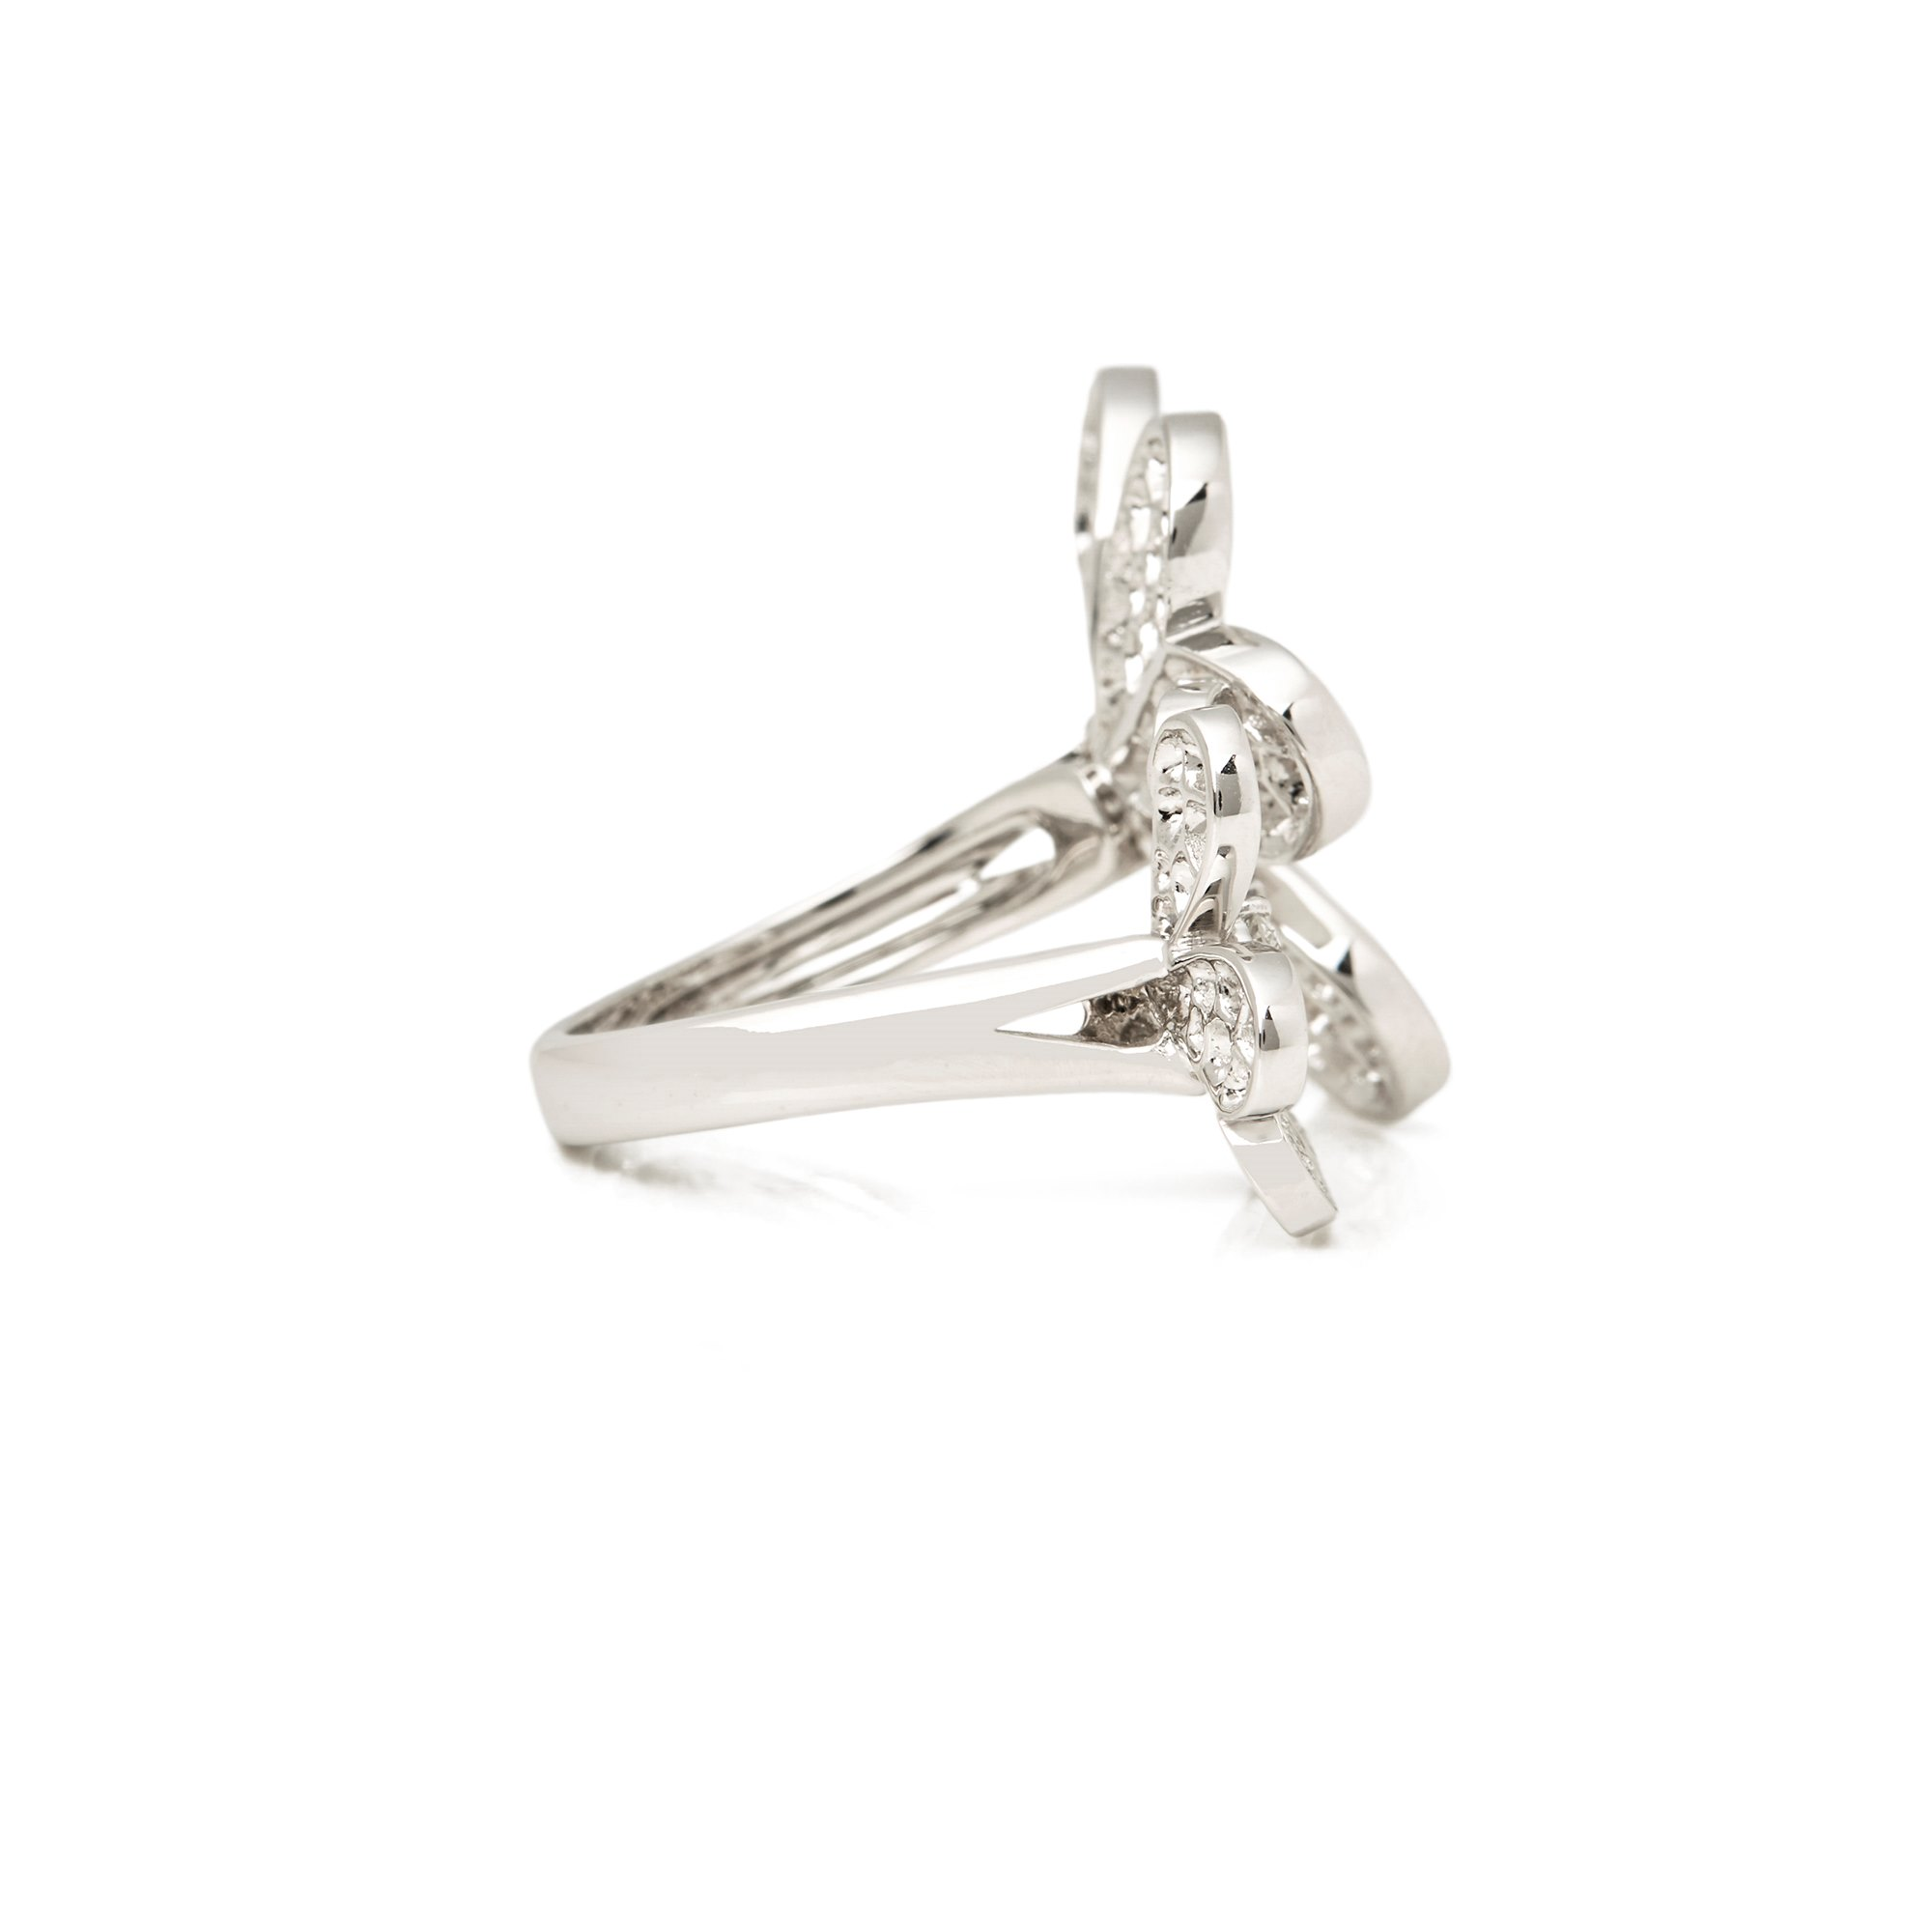 Van Cleef & Arpels 18k White Gold Diamond Frivole Between The Finger Ring